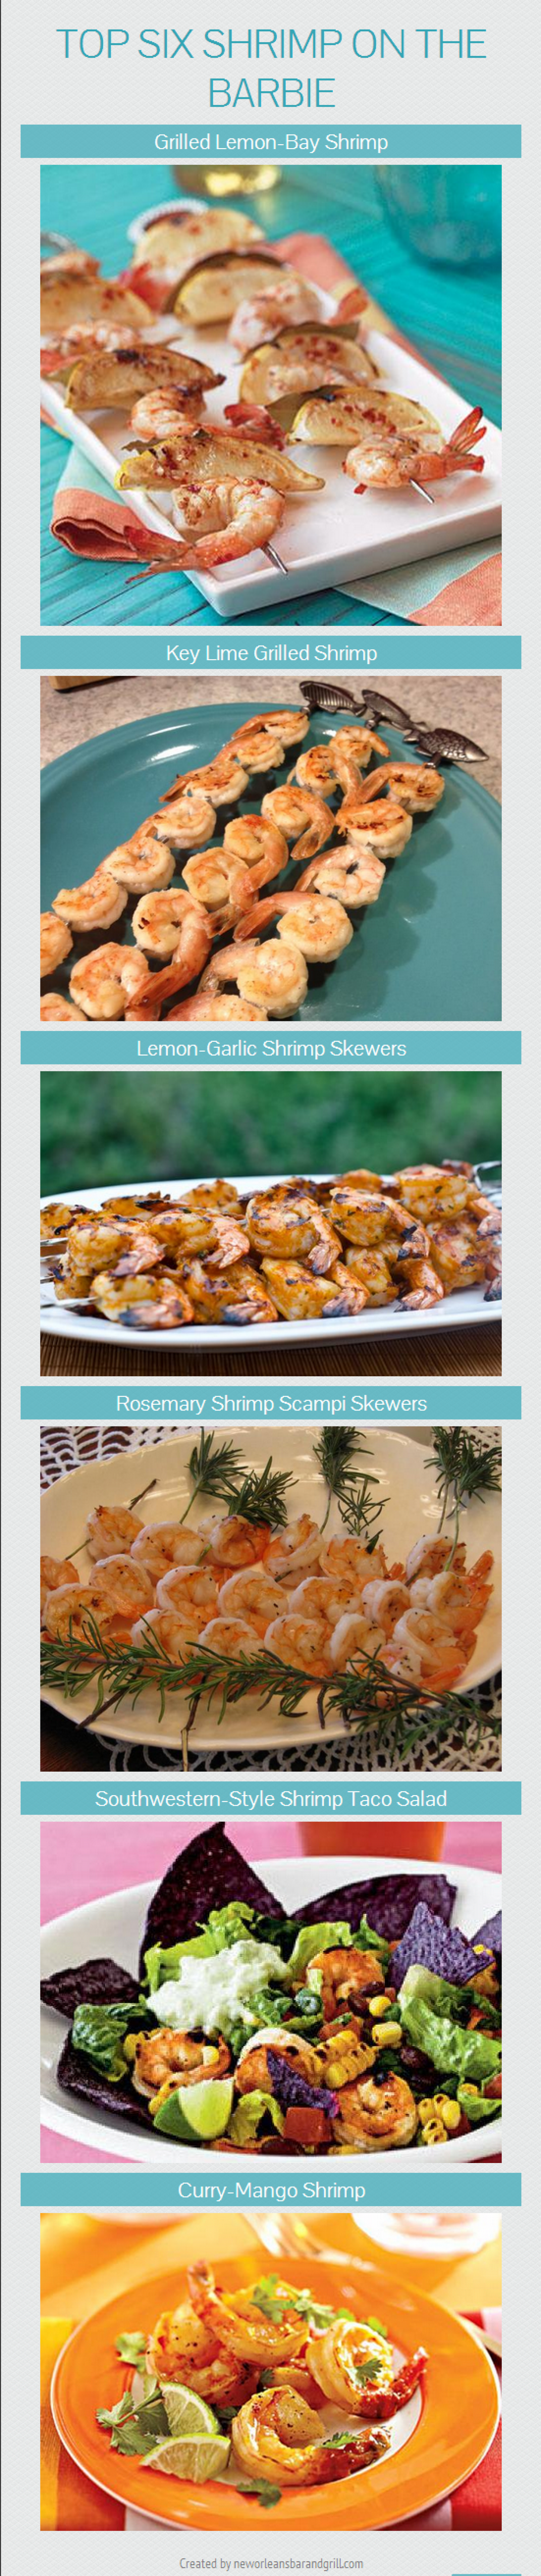 Top Six Shrimp on the Barbie Infographic